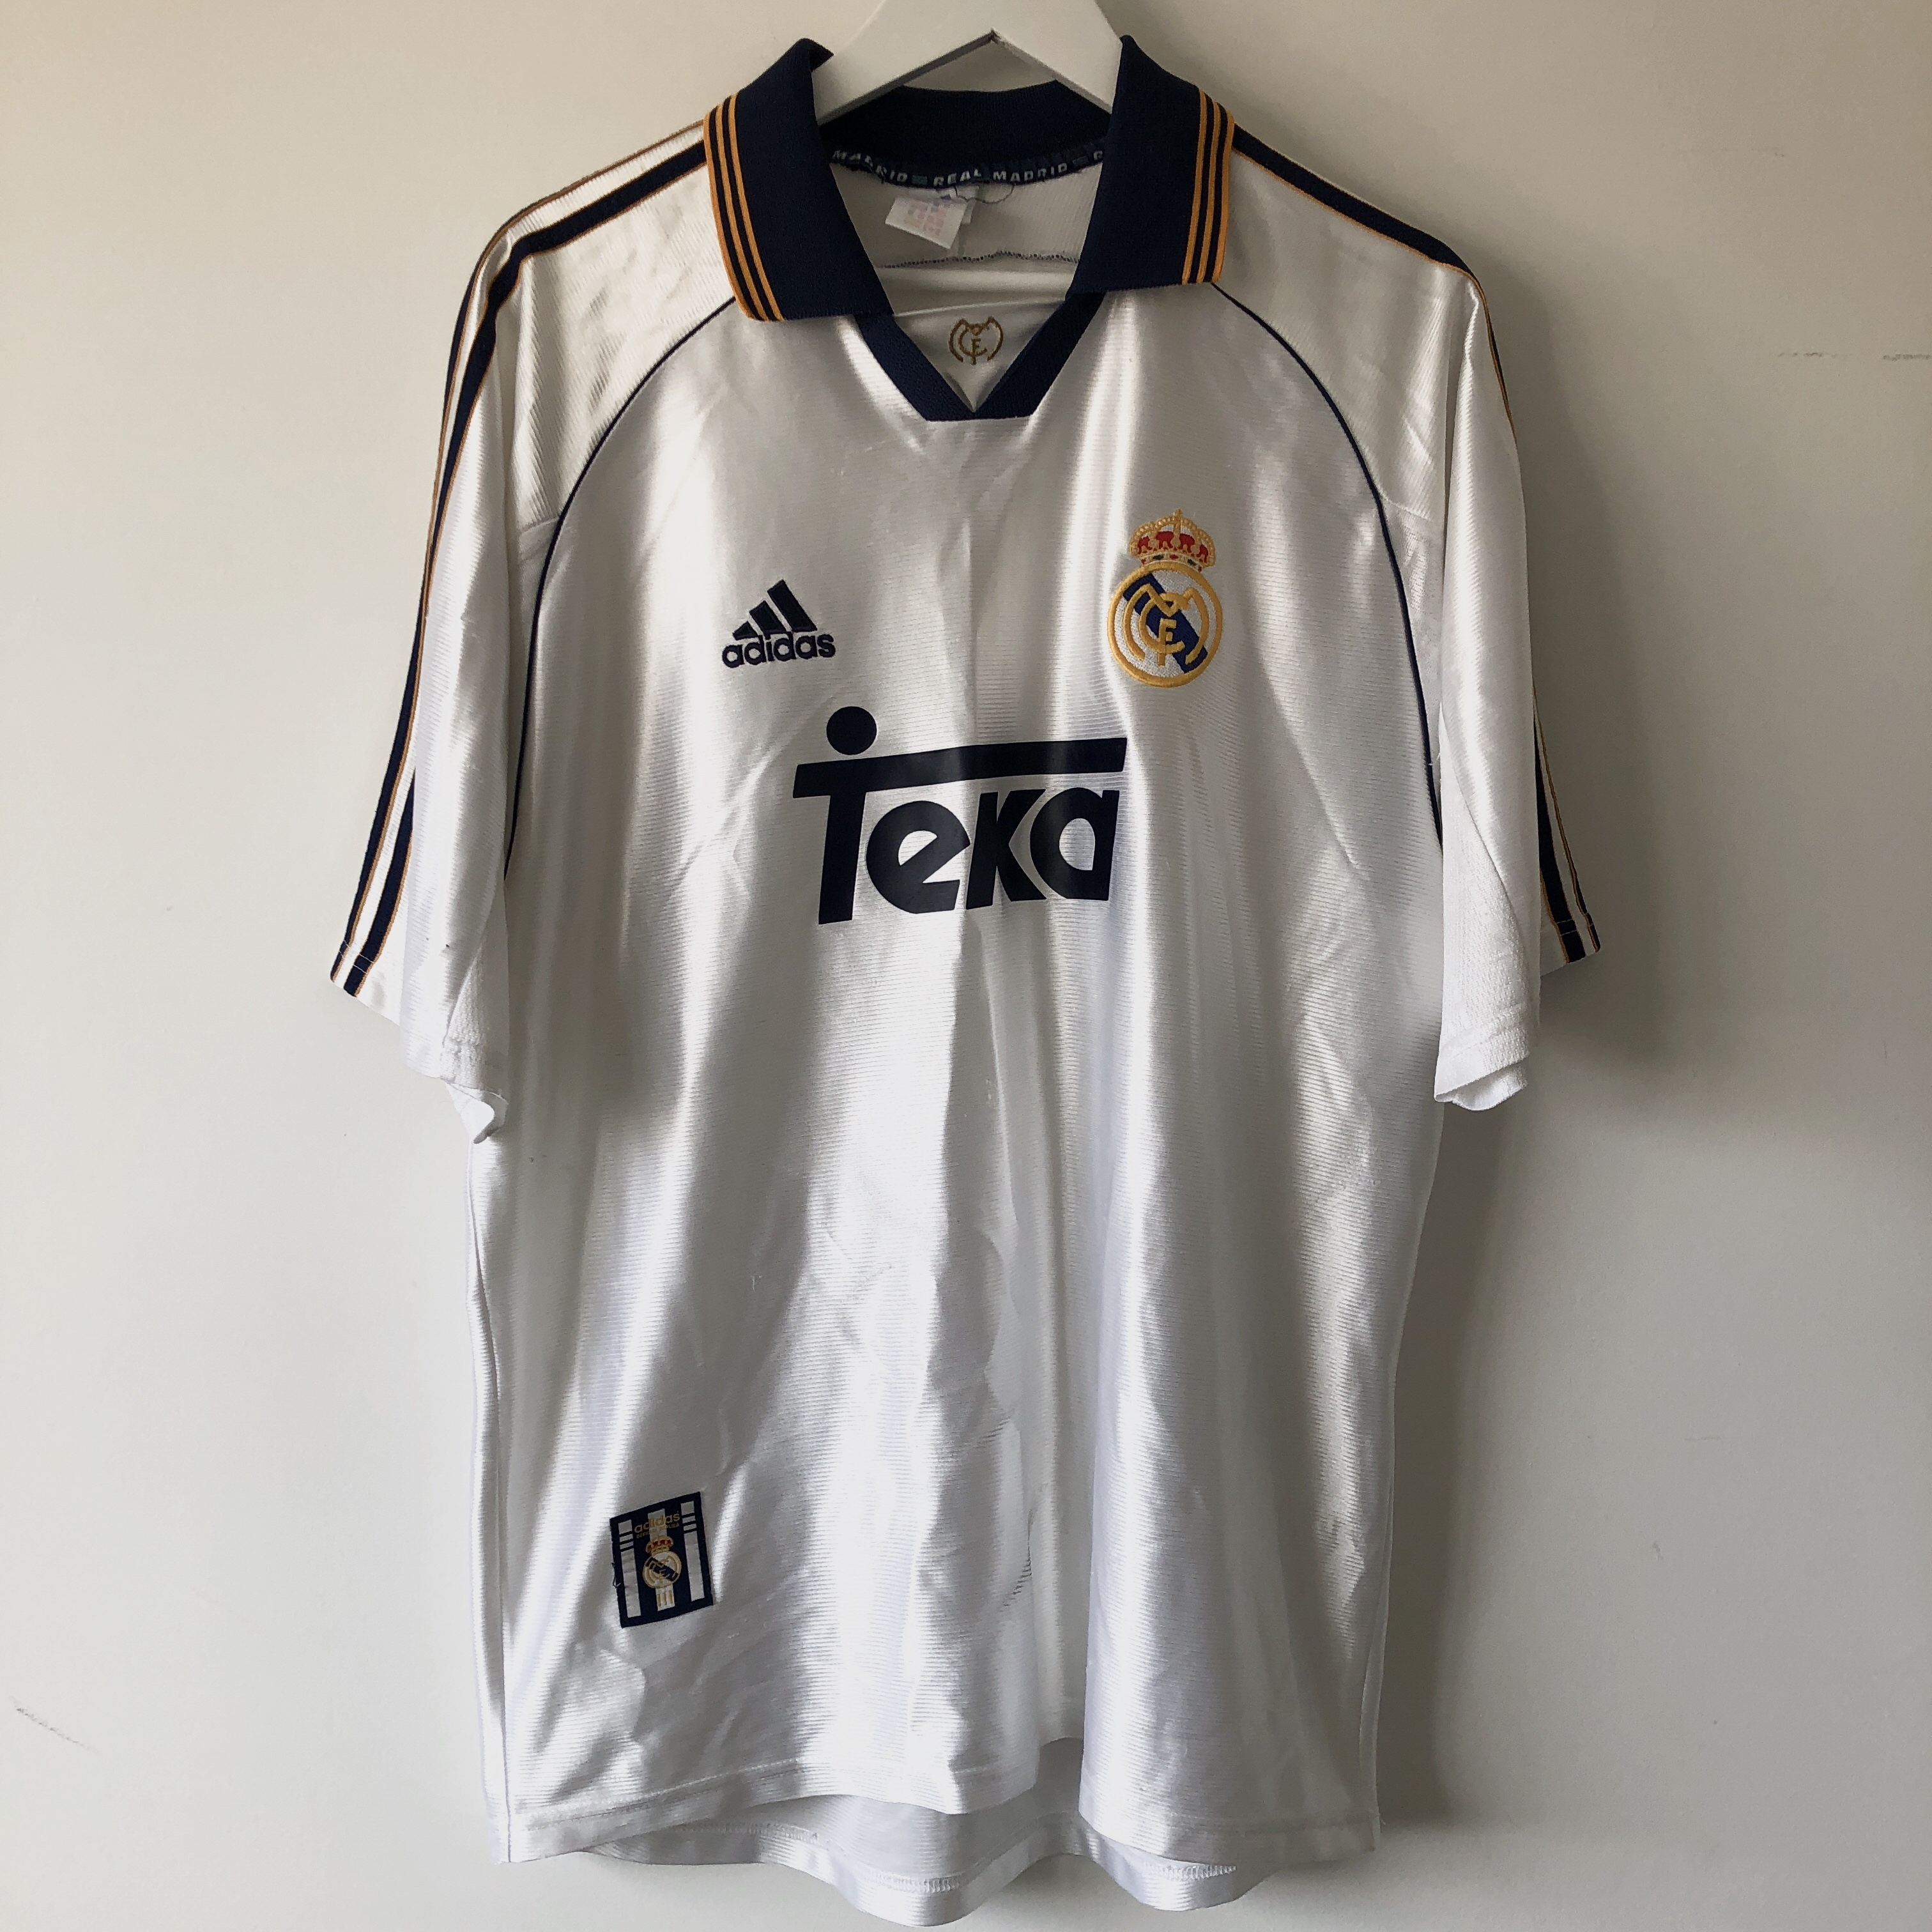 uk availability 5da6f c0274 ADIDAS VINTAGE REAL MADRID TEKA JERSEY DROPPING A... - Depop